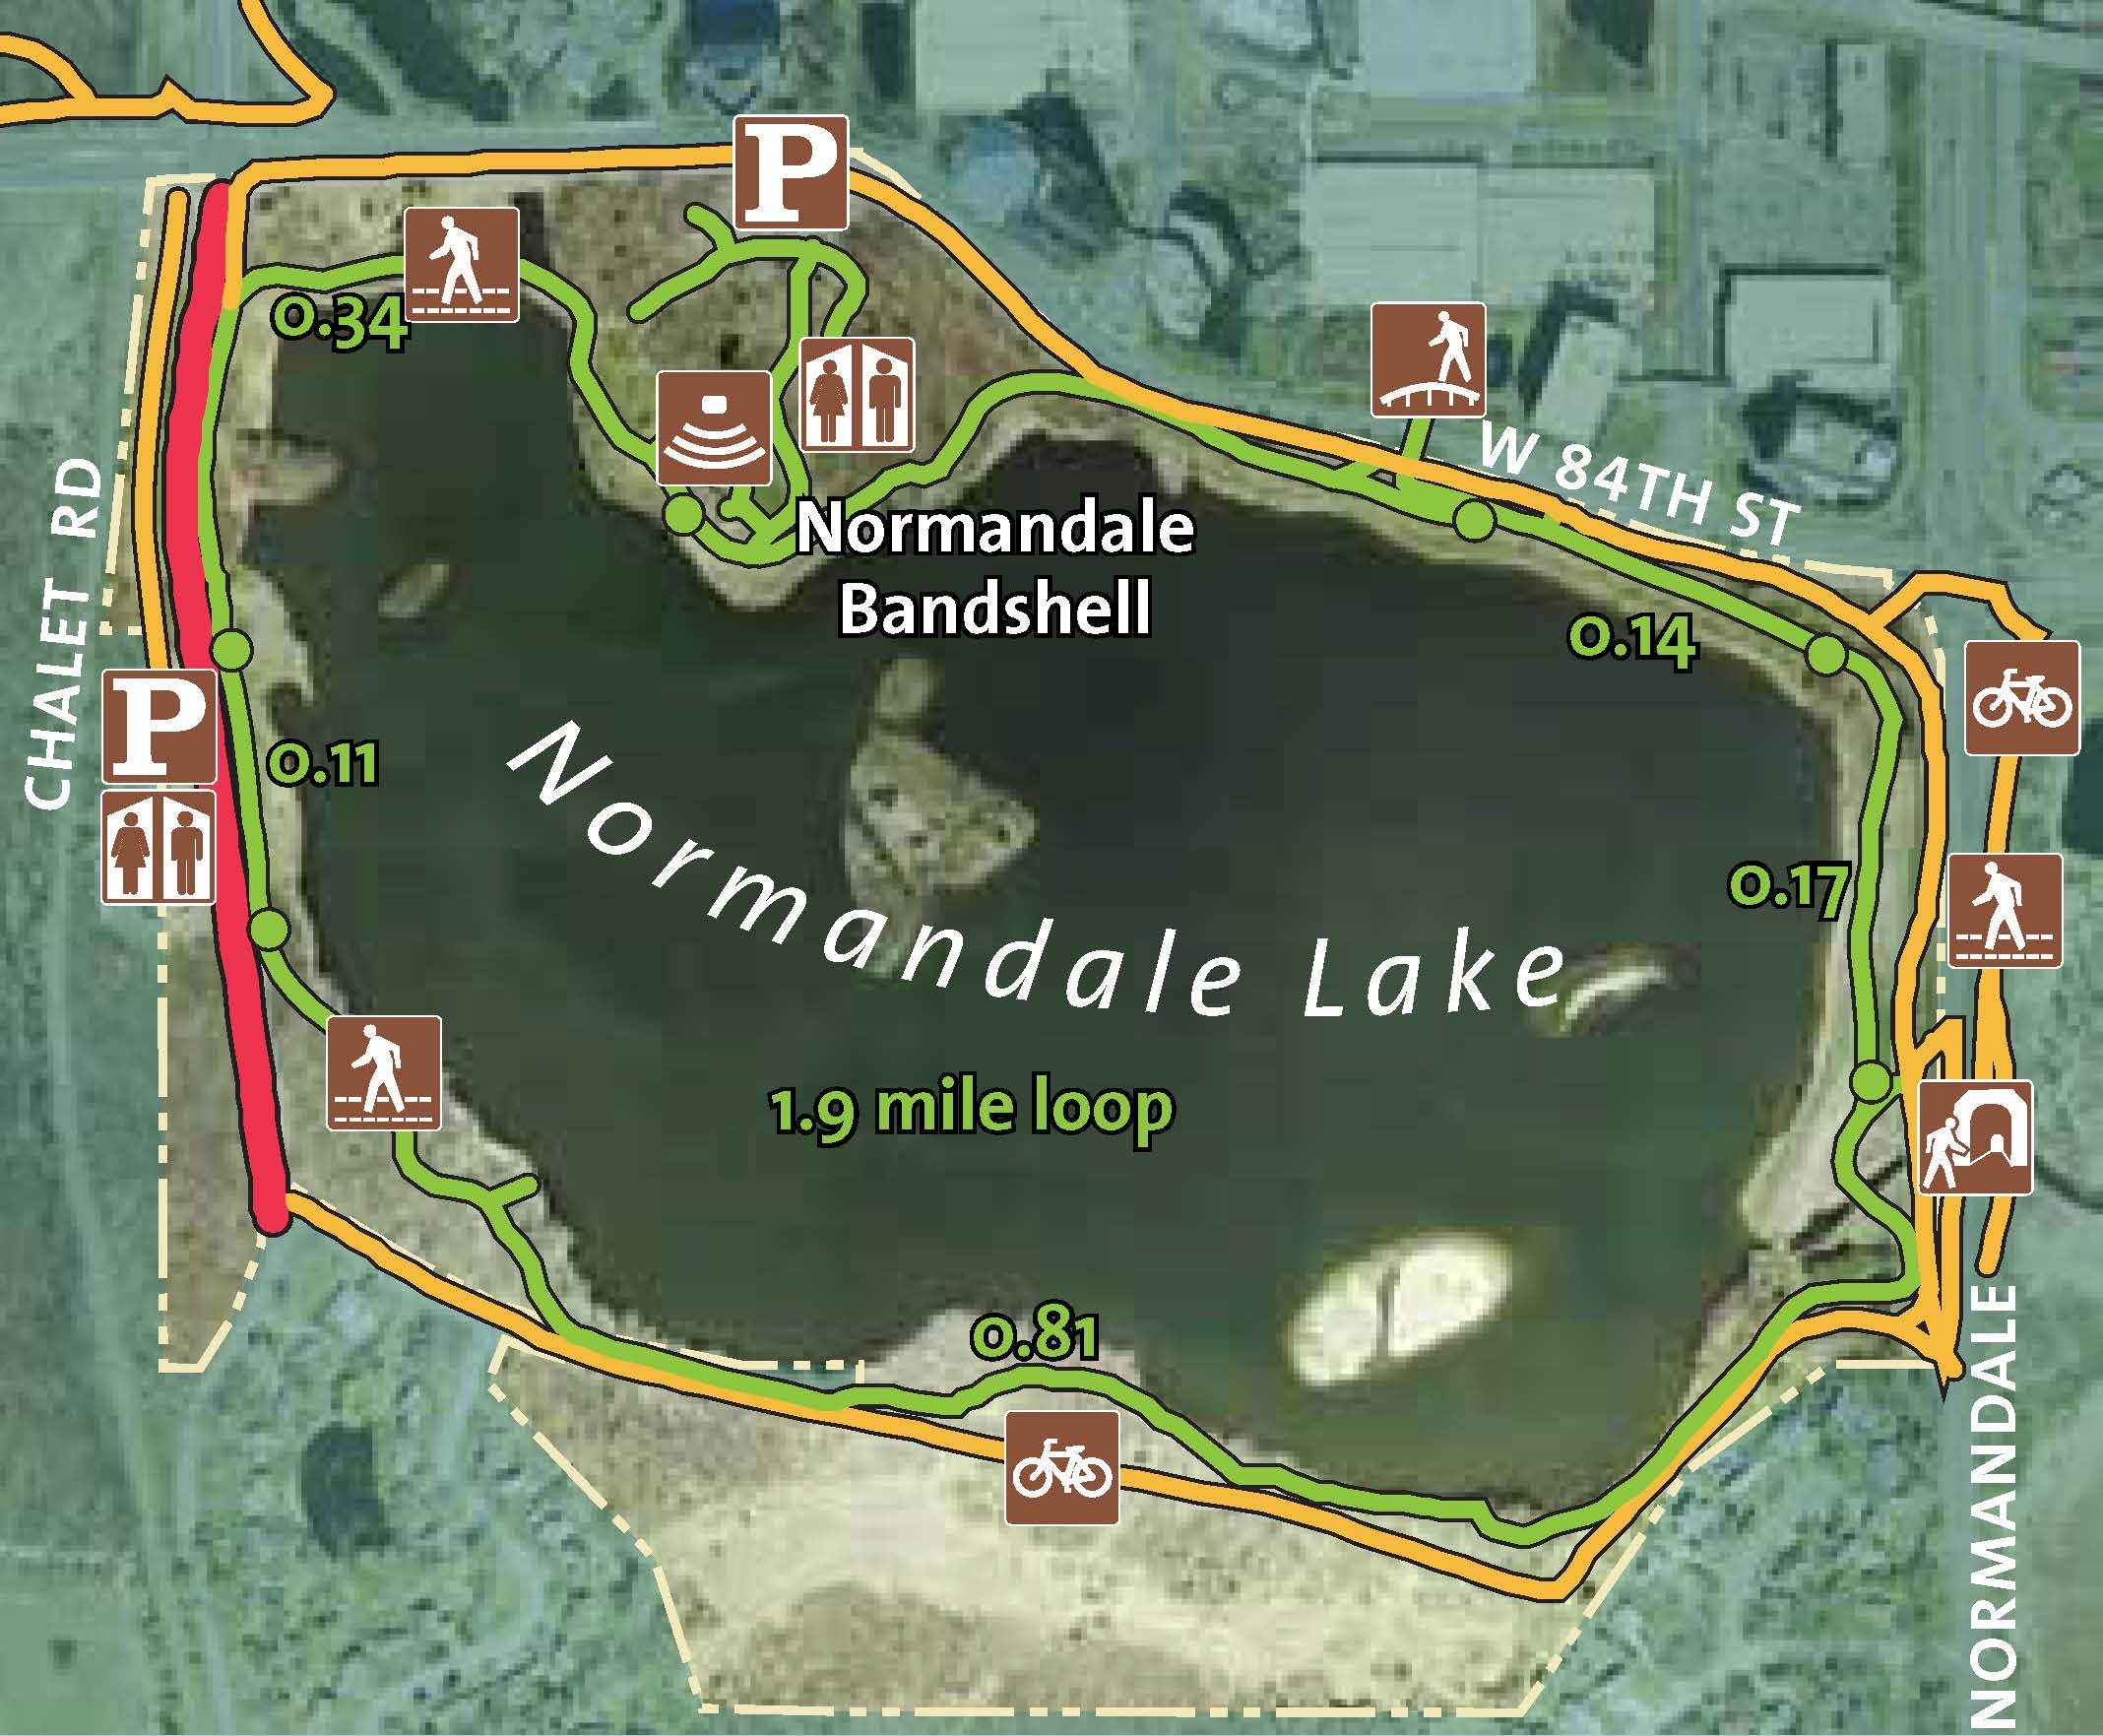 Hiking and biking trail map for Normandale Lake.